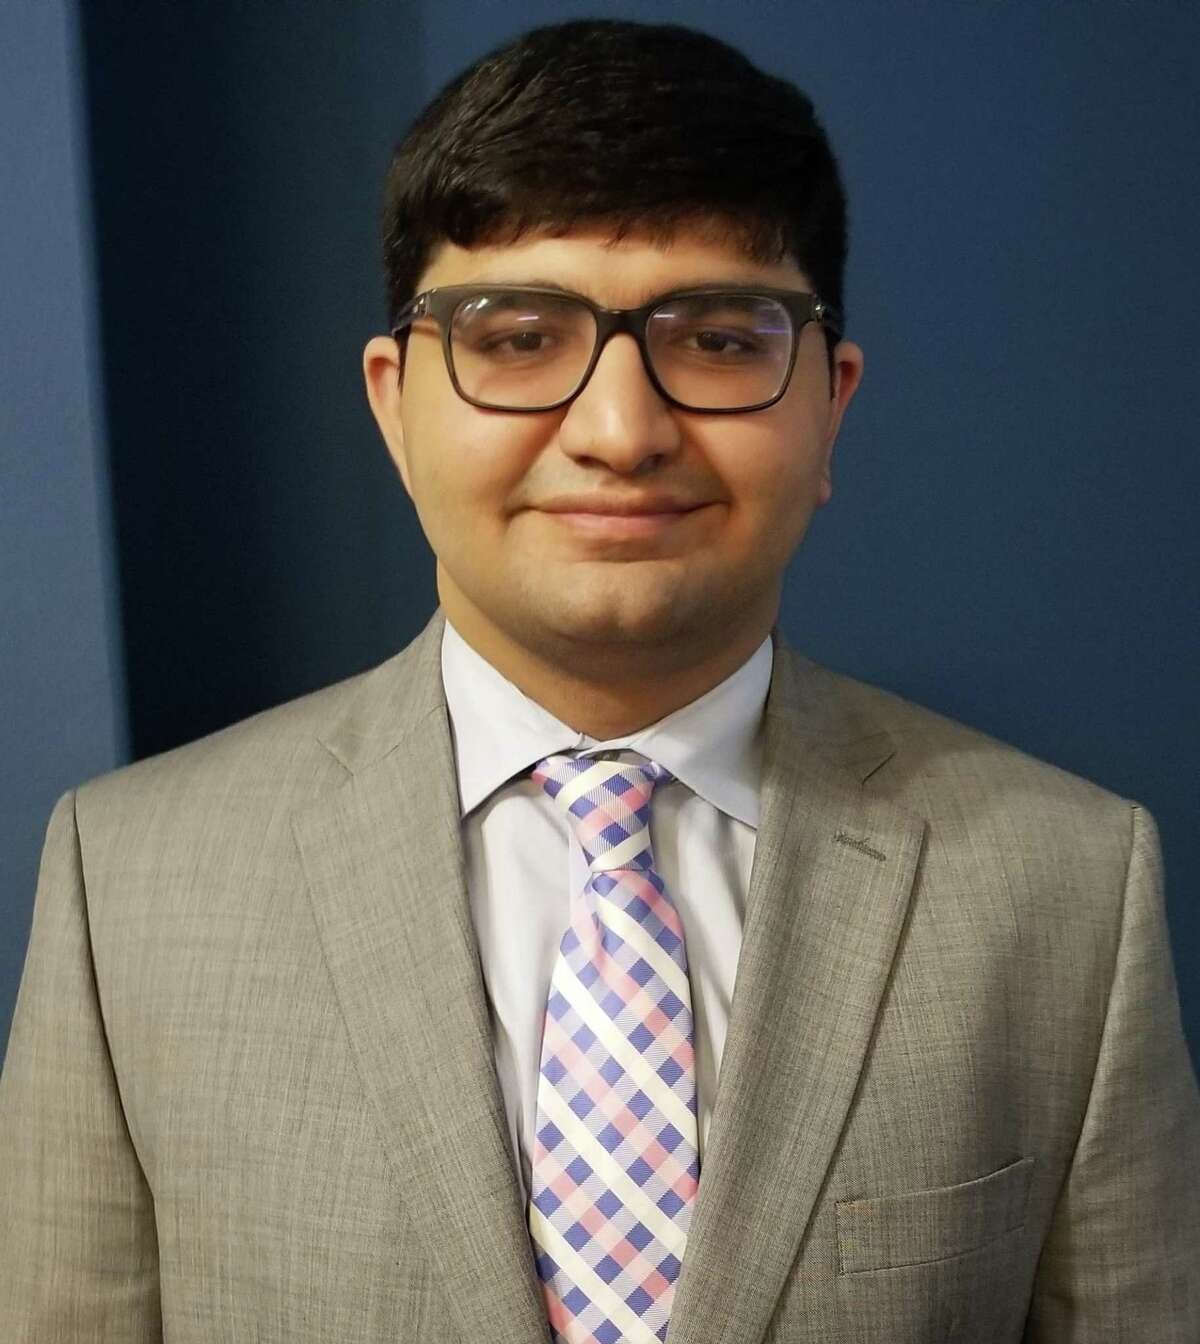 Austin High School salutatorian Naveen Ali is planning to attend the University of Texas at Austin to study computer science. His advice: Life is a collection of failures. The people that succeed are those who learn from these failures.